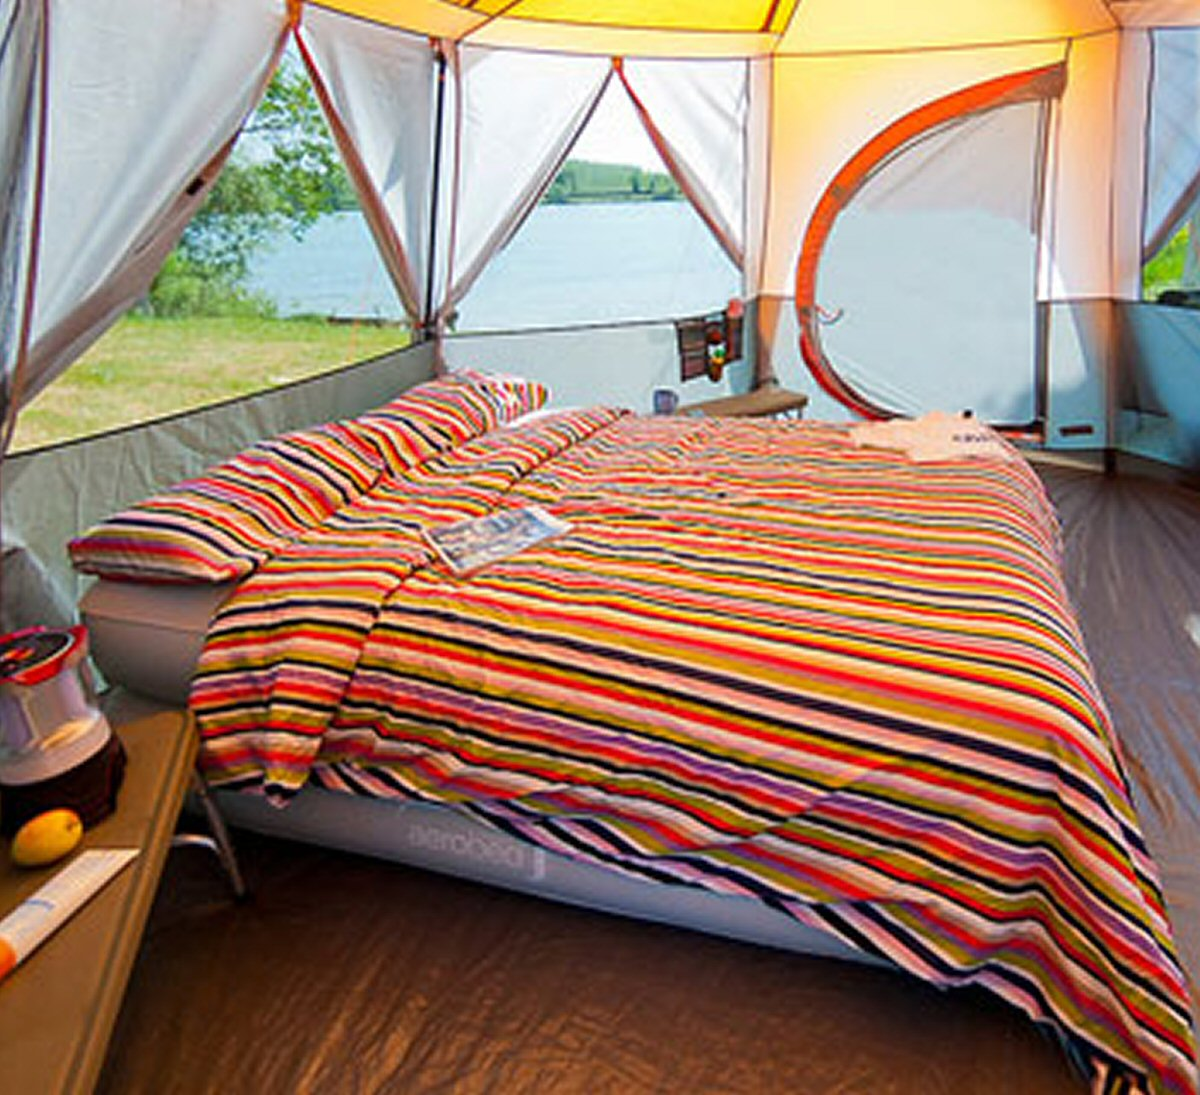 Camp Like A King: Bringing Luxury To Your Camping Holiday